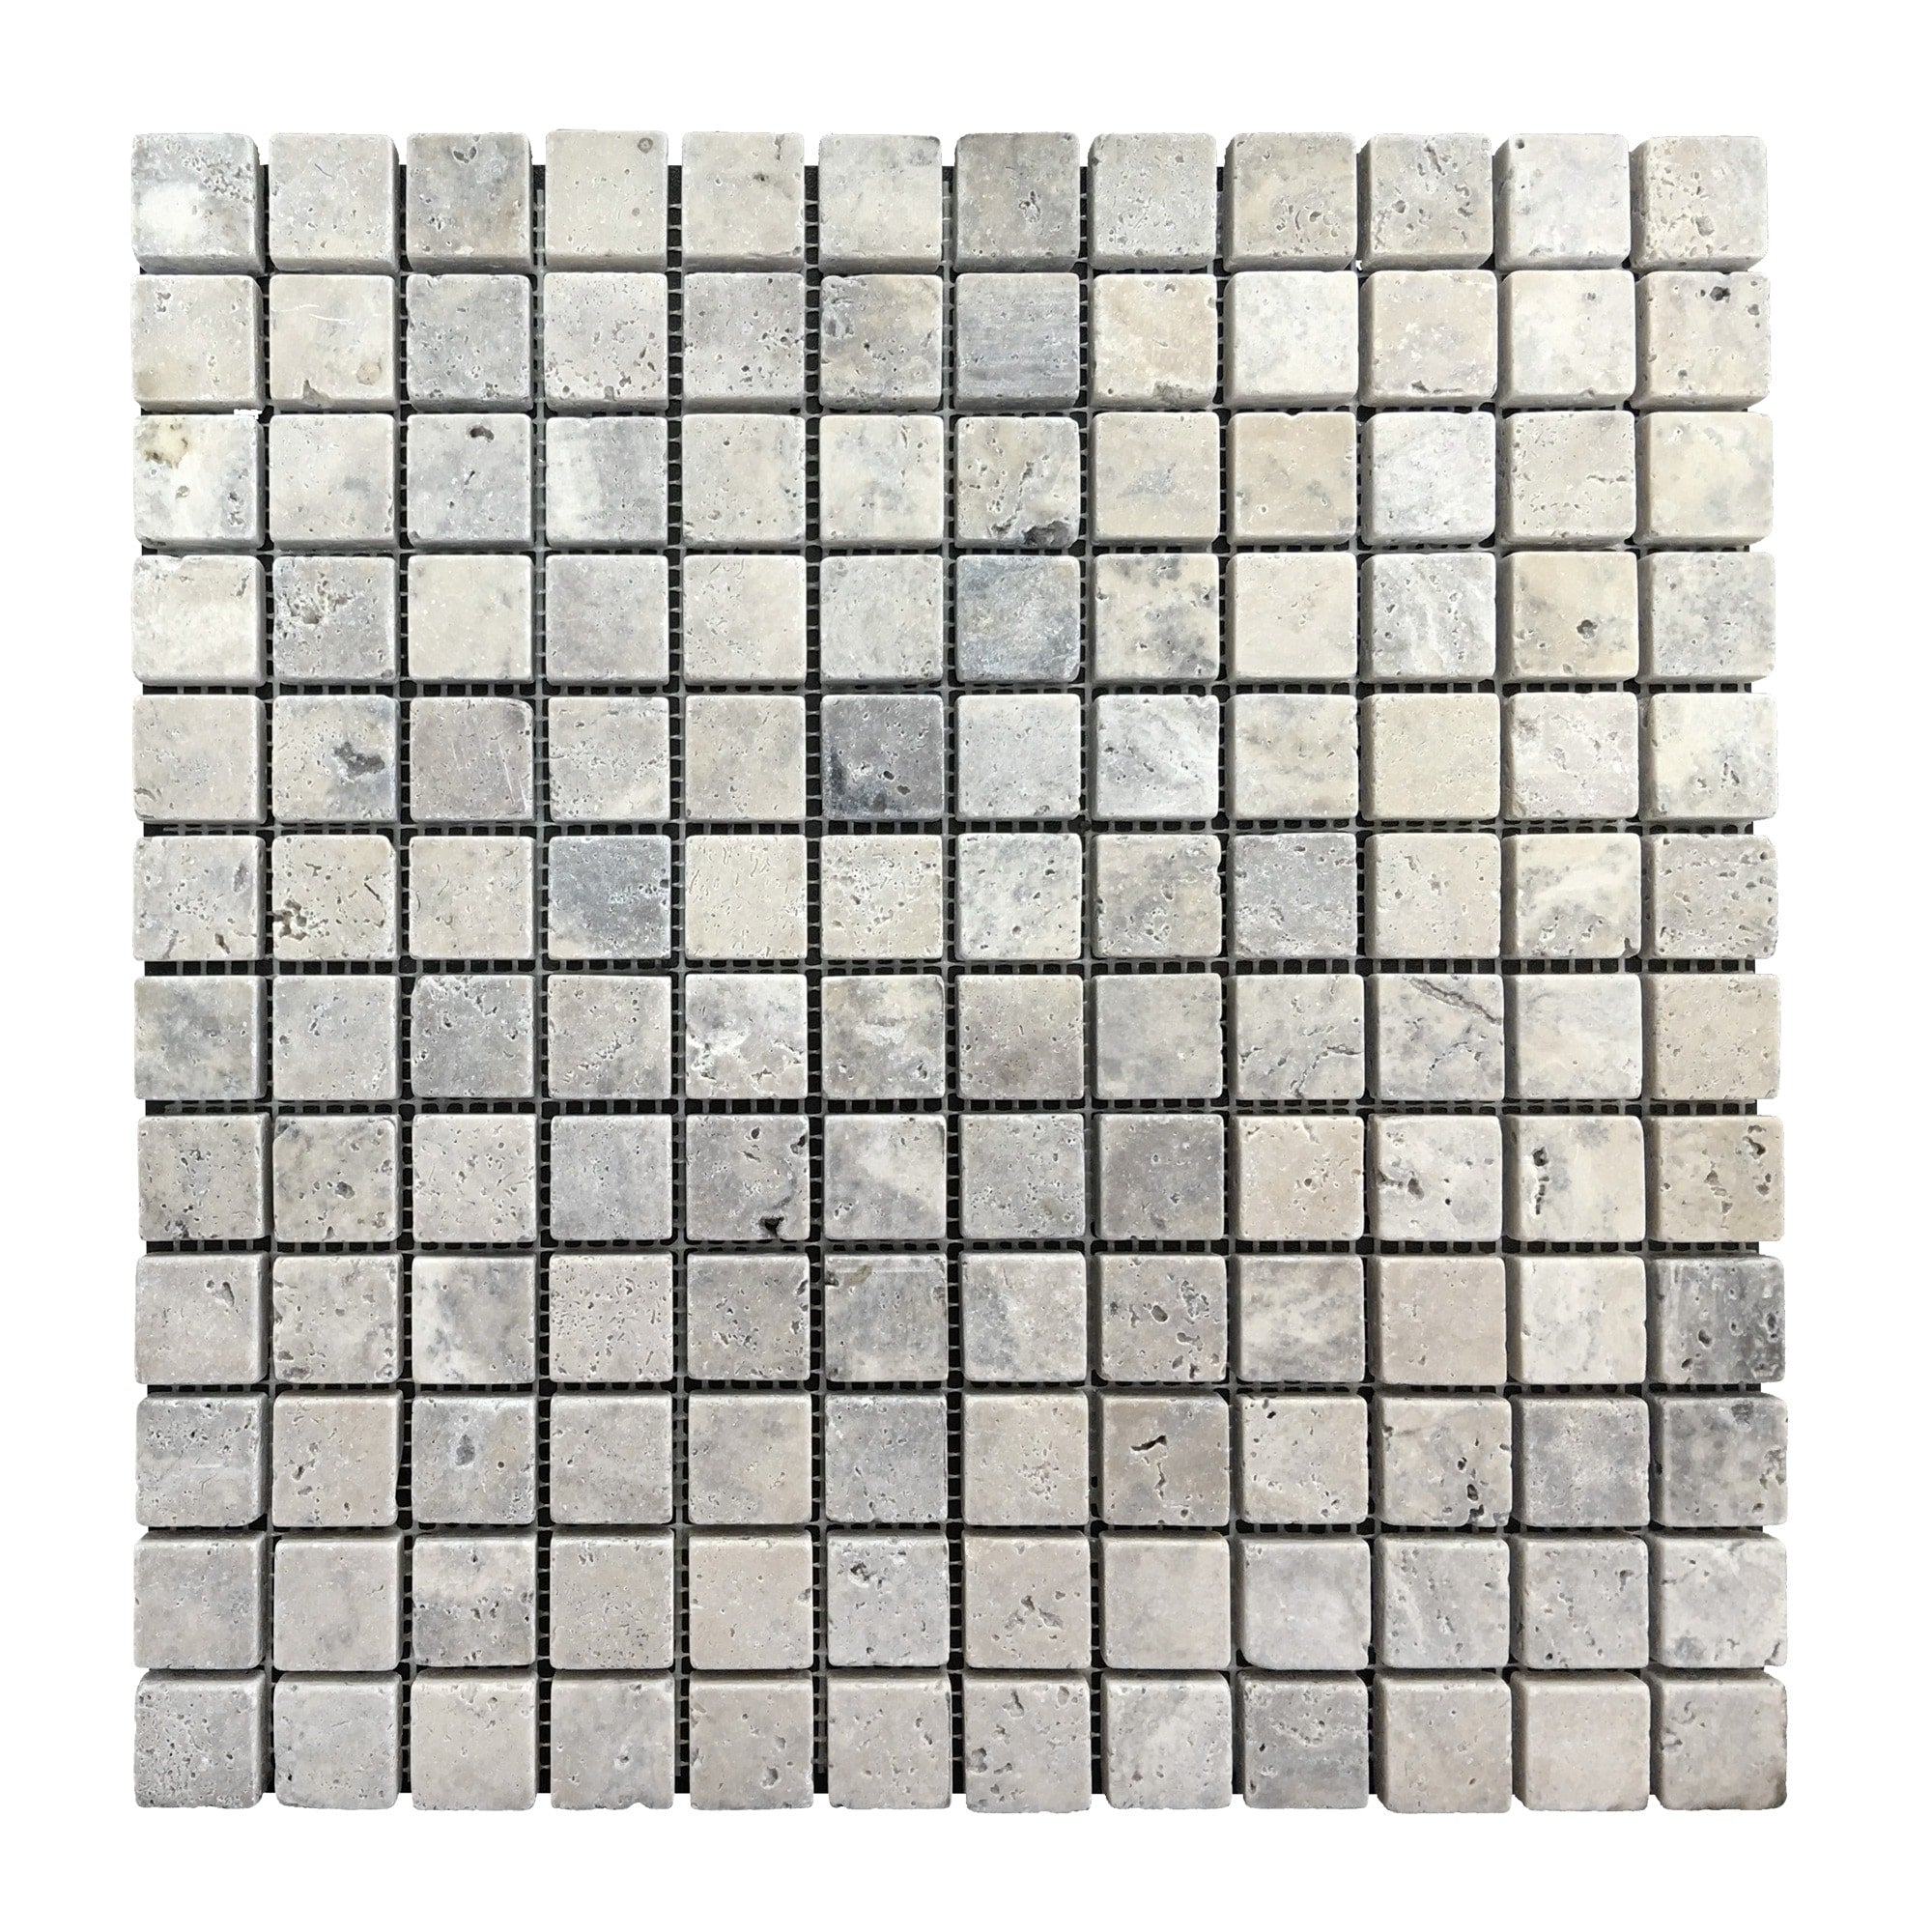 Travertine Silver Mosaic 1″ x 1″ Tiles